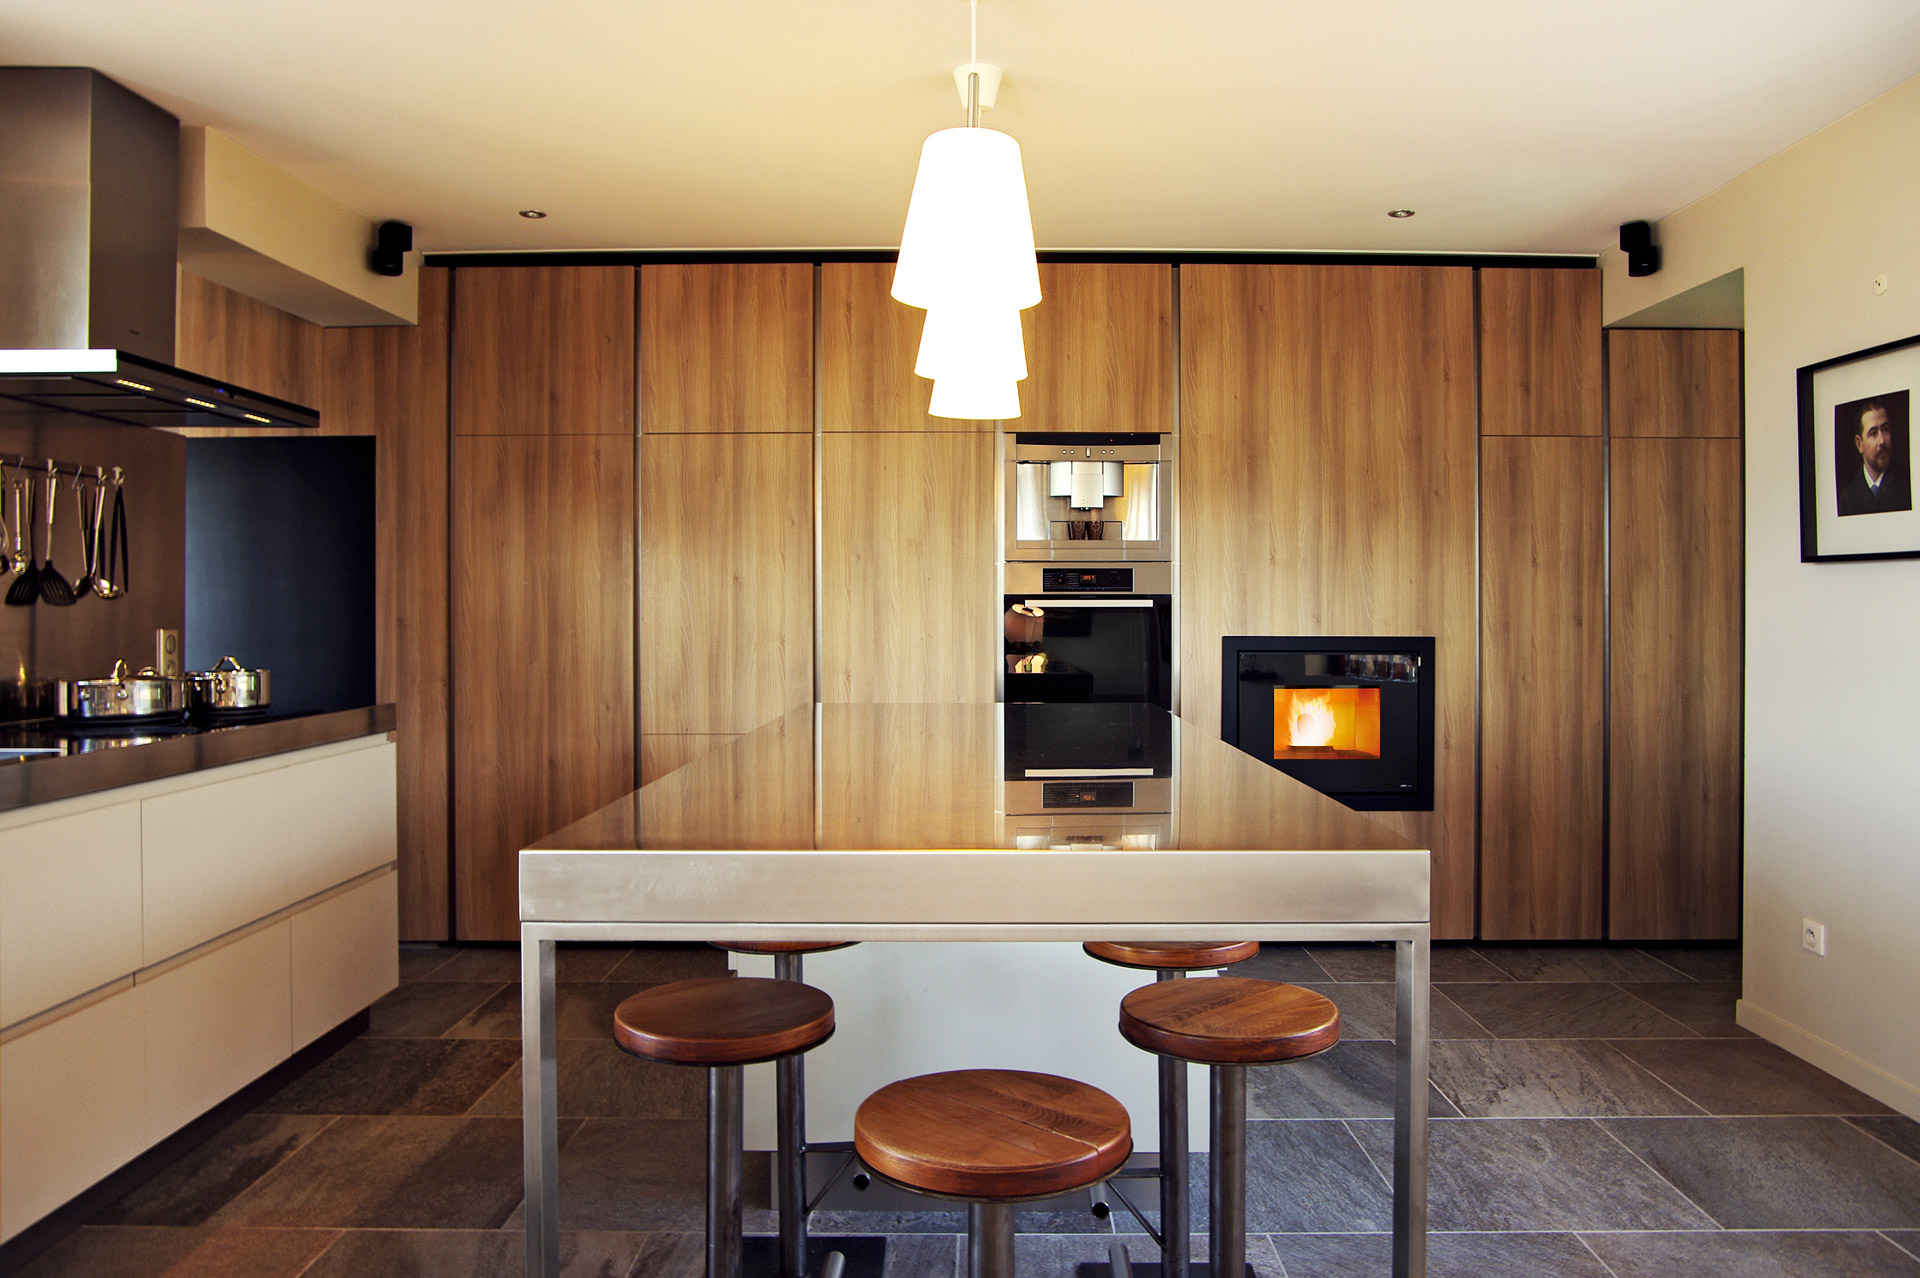 Pellet fireplace in a kitchen by MCZ